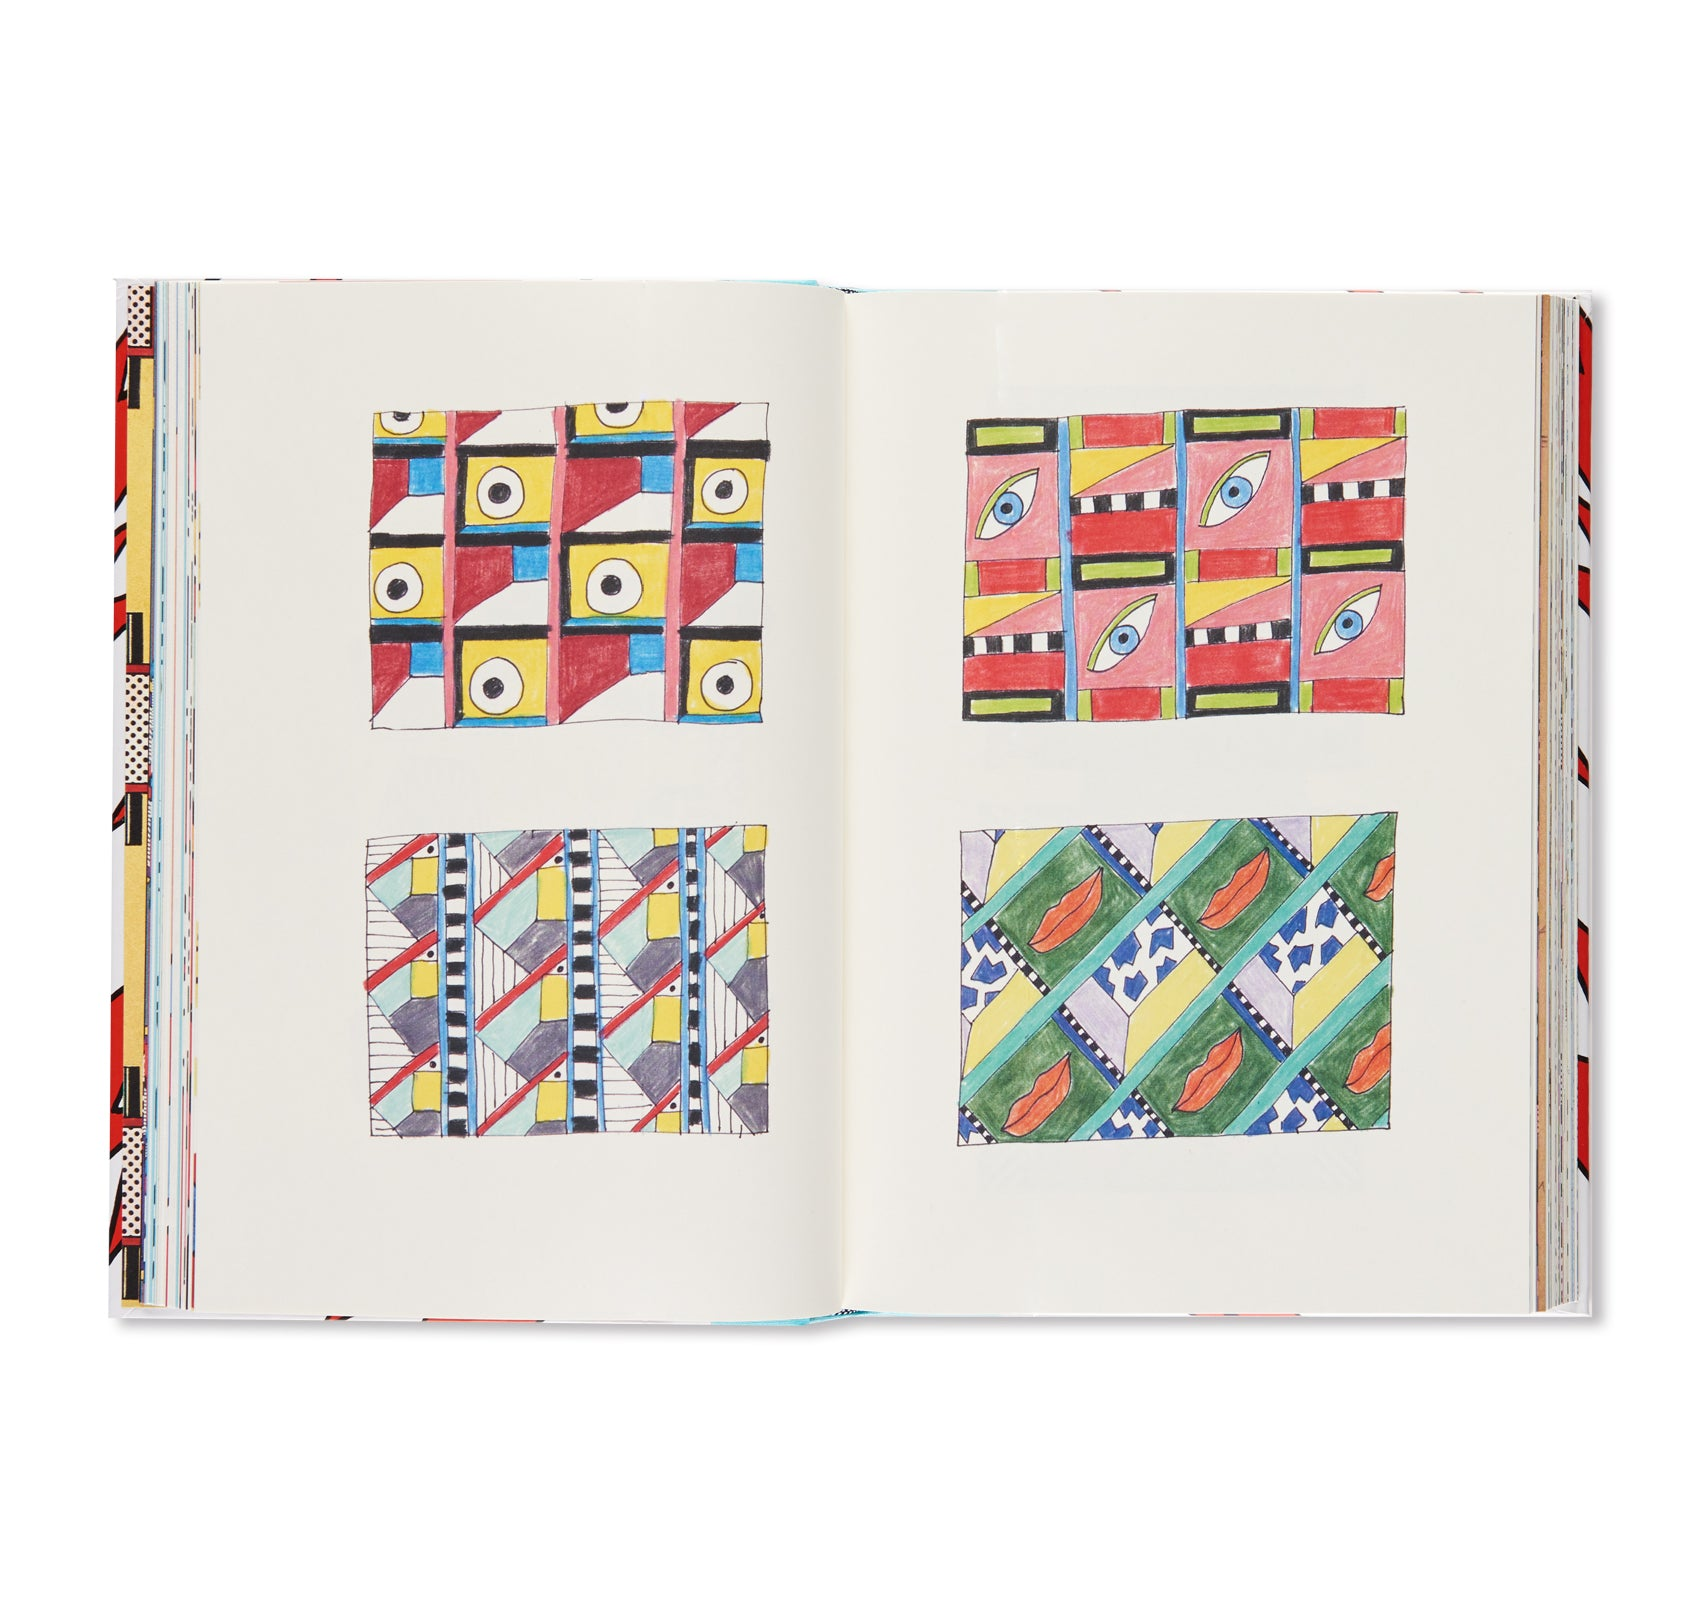 DON'T TAKE THESE DRAWINGS SERIOUSLY 1981-1987 by Nathalie Du Pasquier